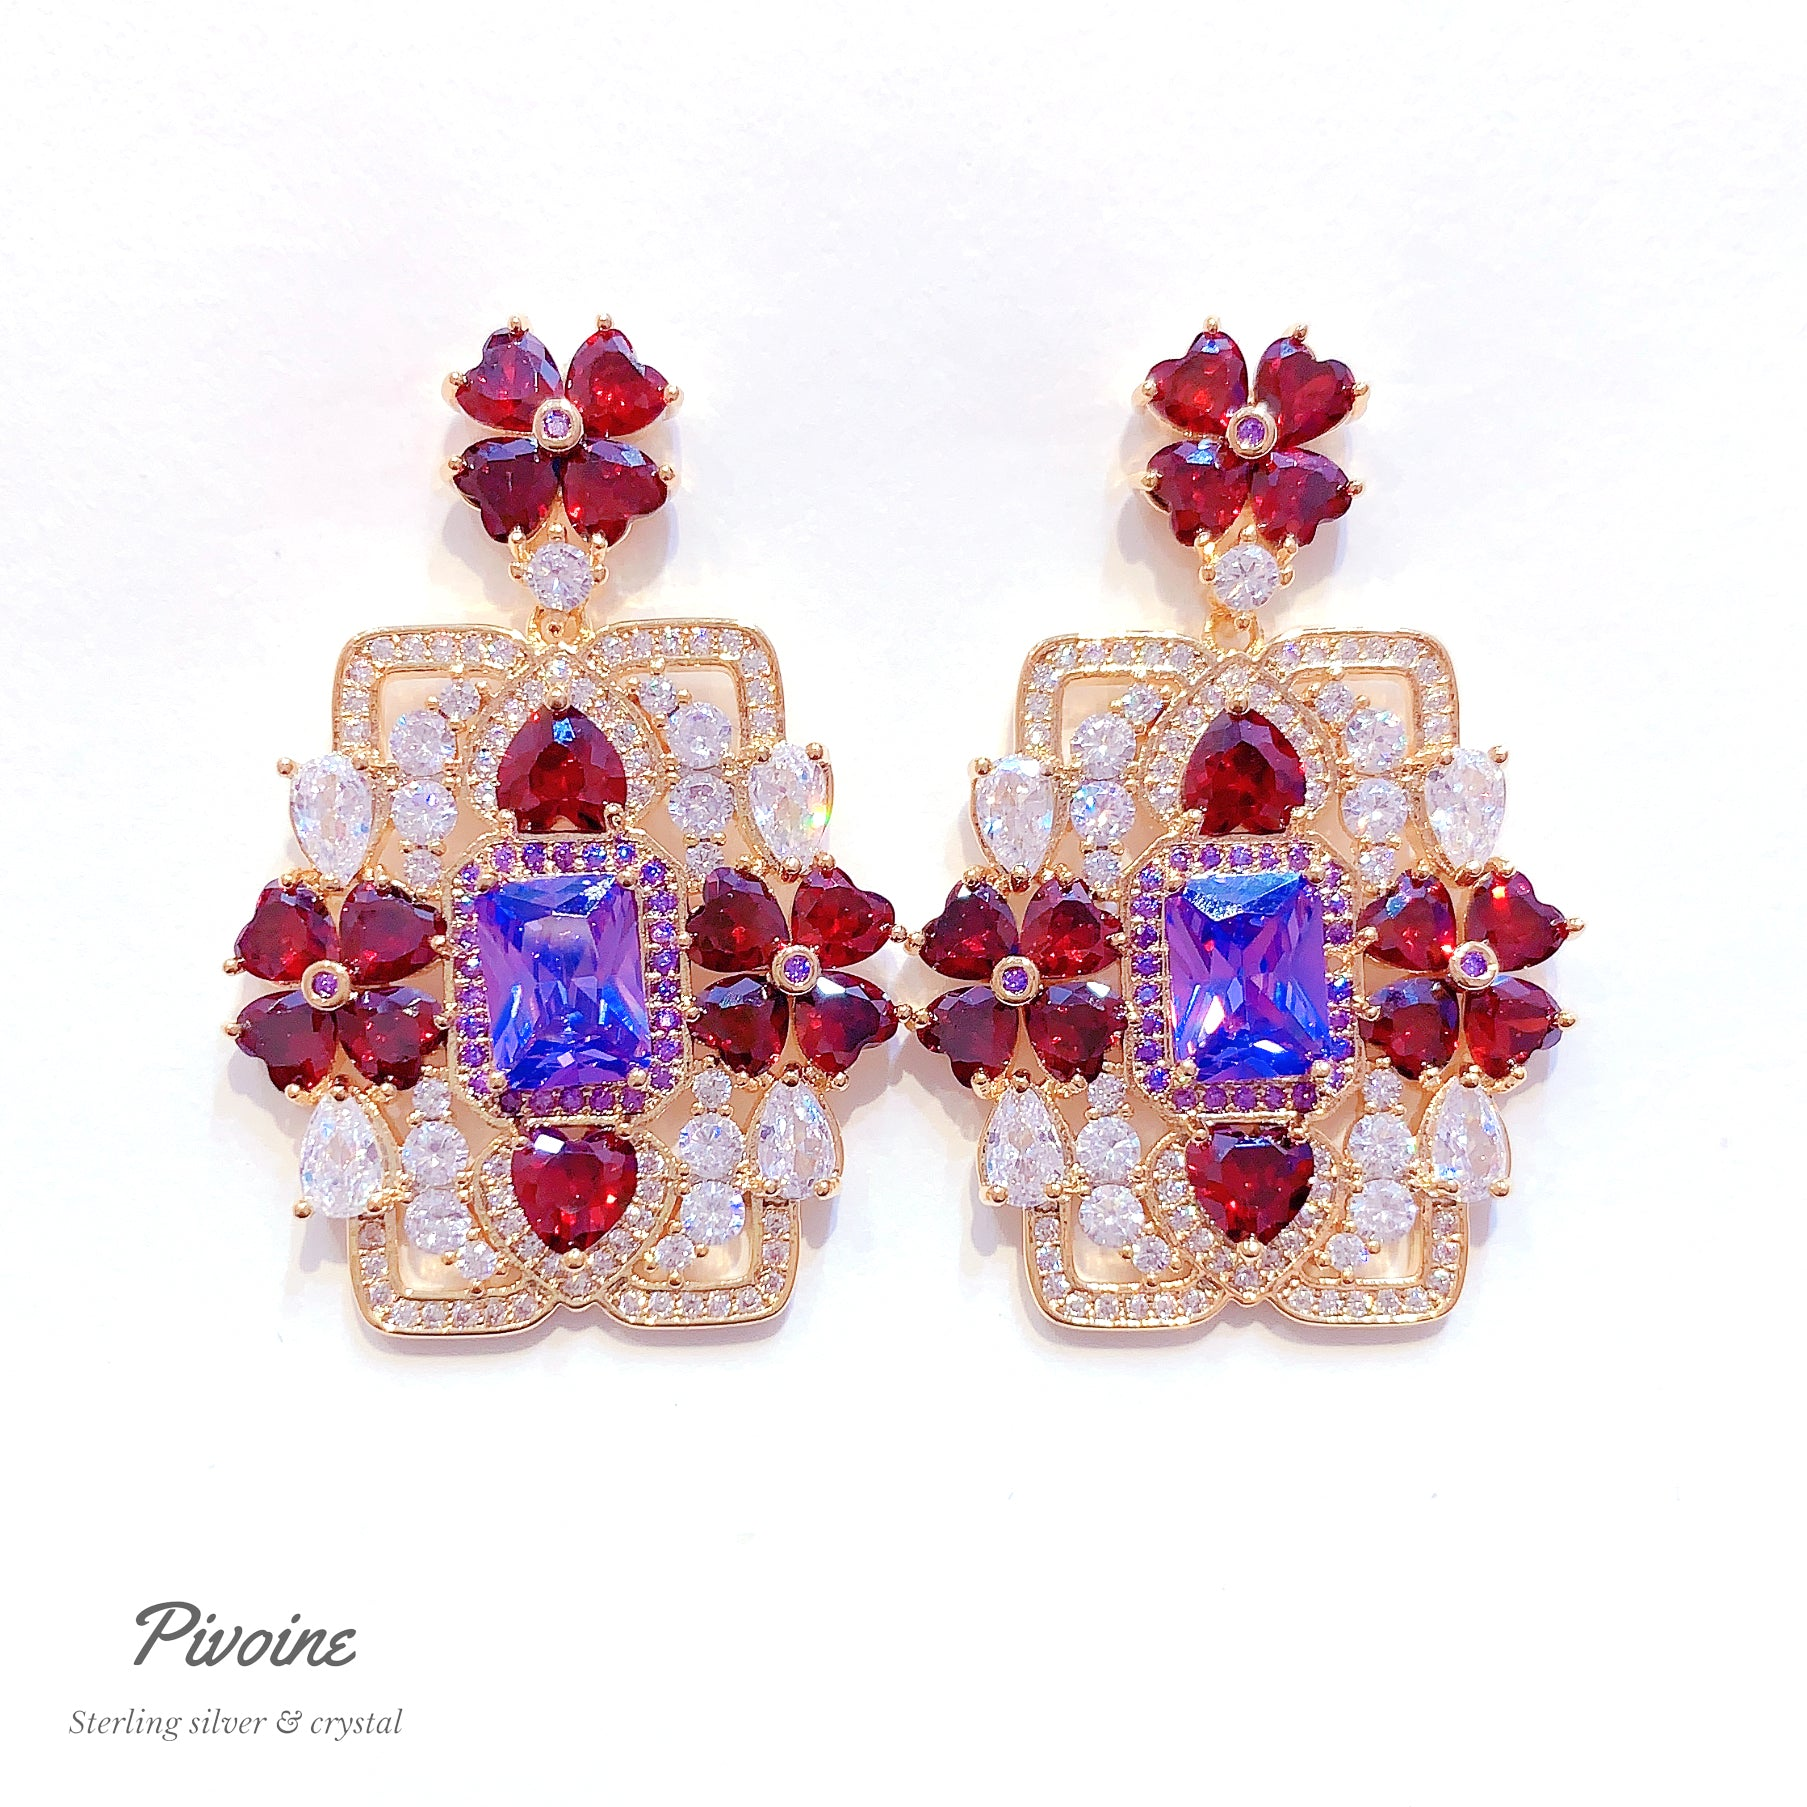 Pivoine Milano Sterling Silver and Crystal Bridal Earrings 115